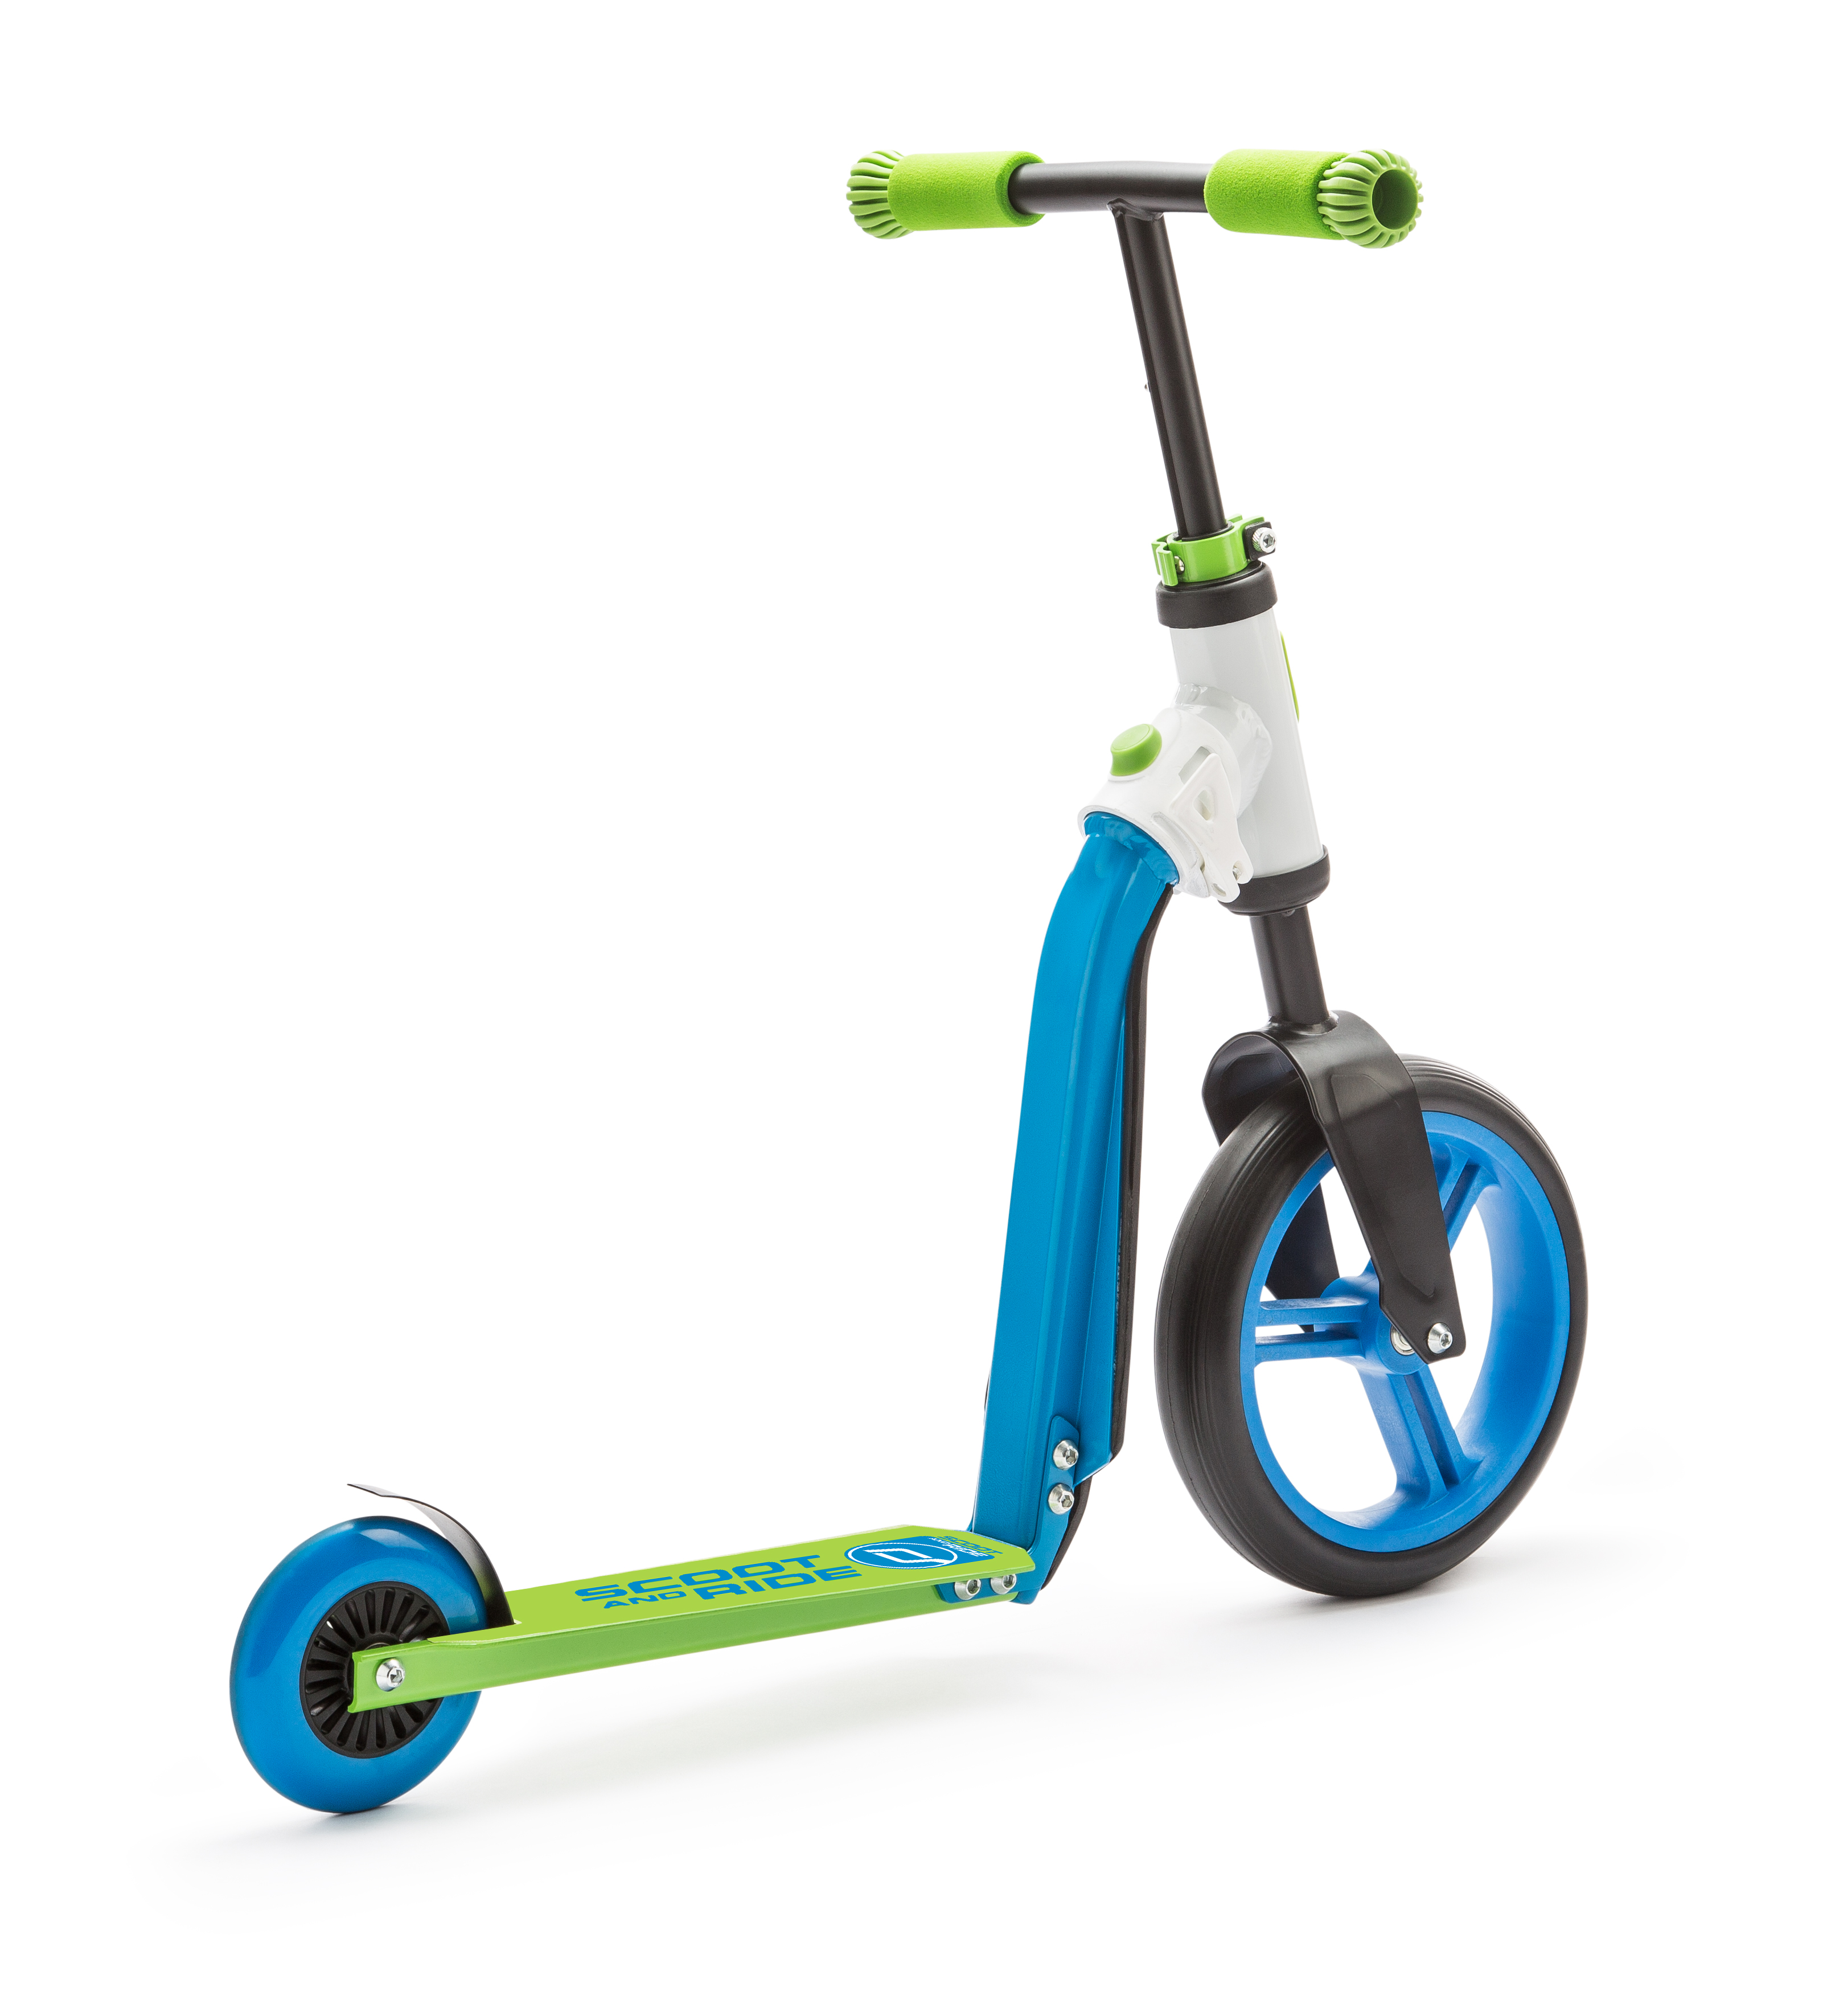 Scooter and Ride Highway Buddy - Blue/Green